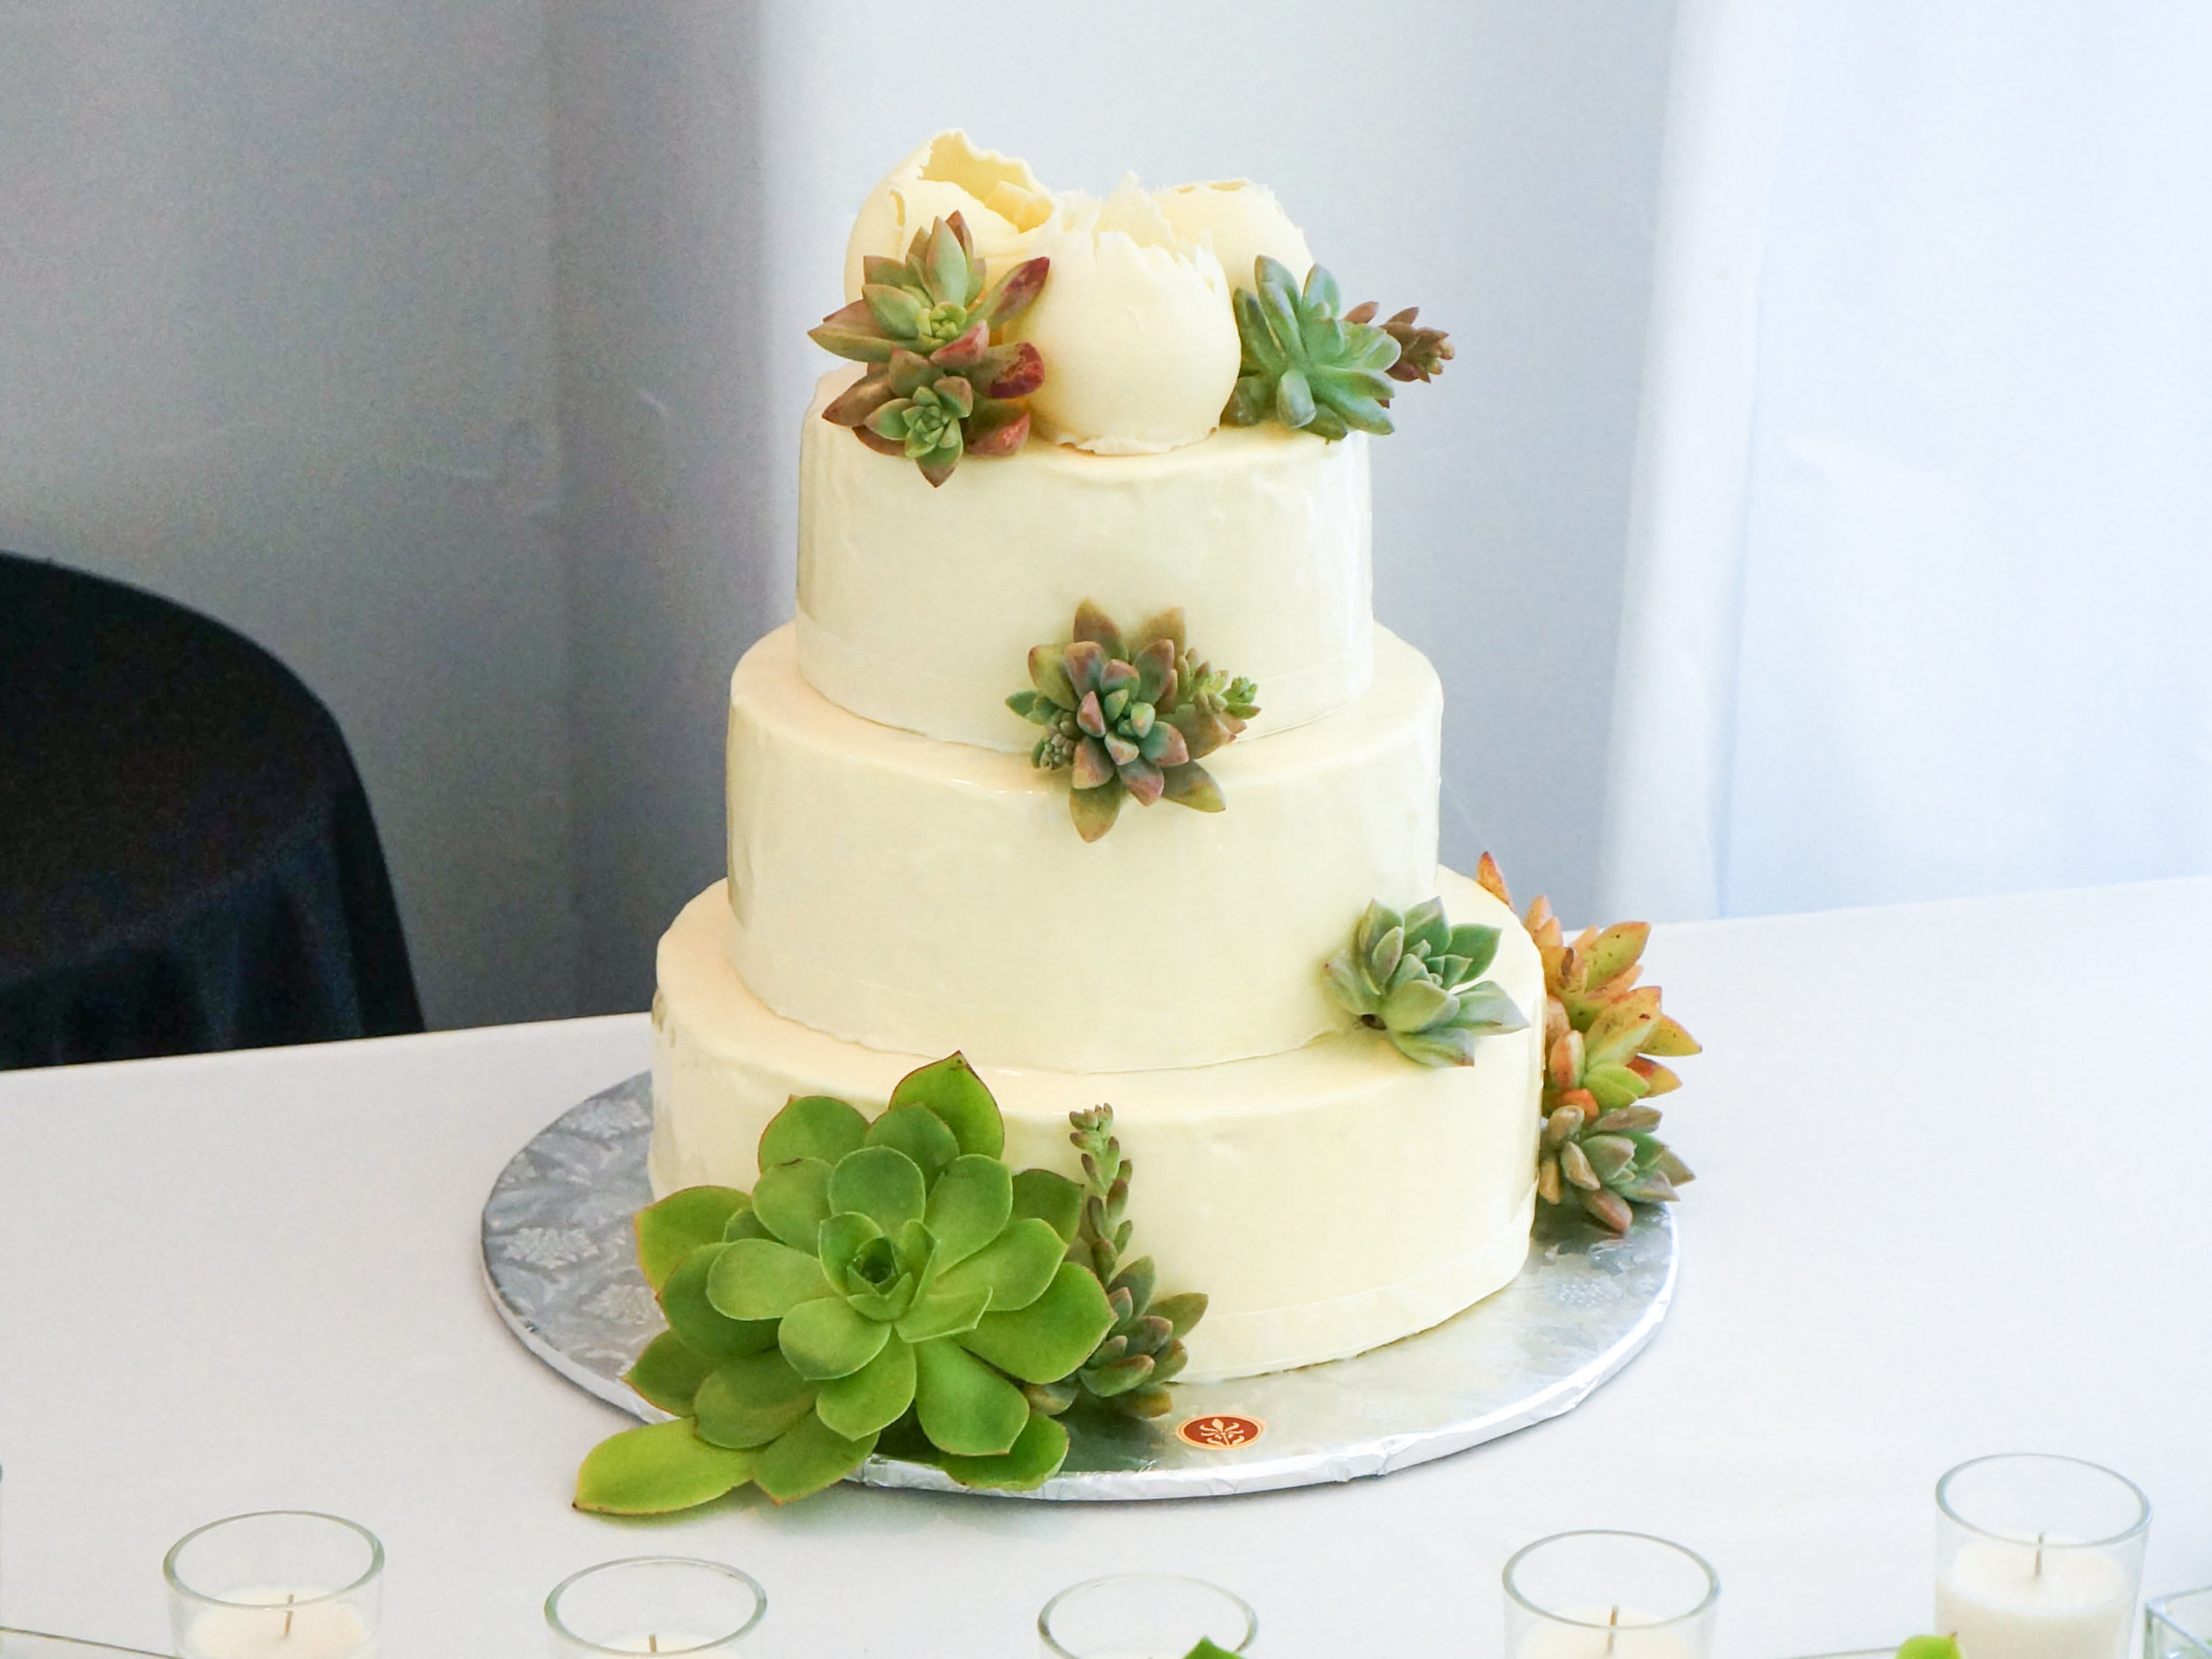 Wedding cake HTL.jpg